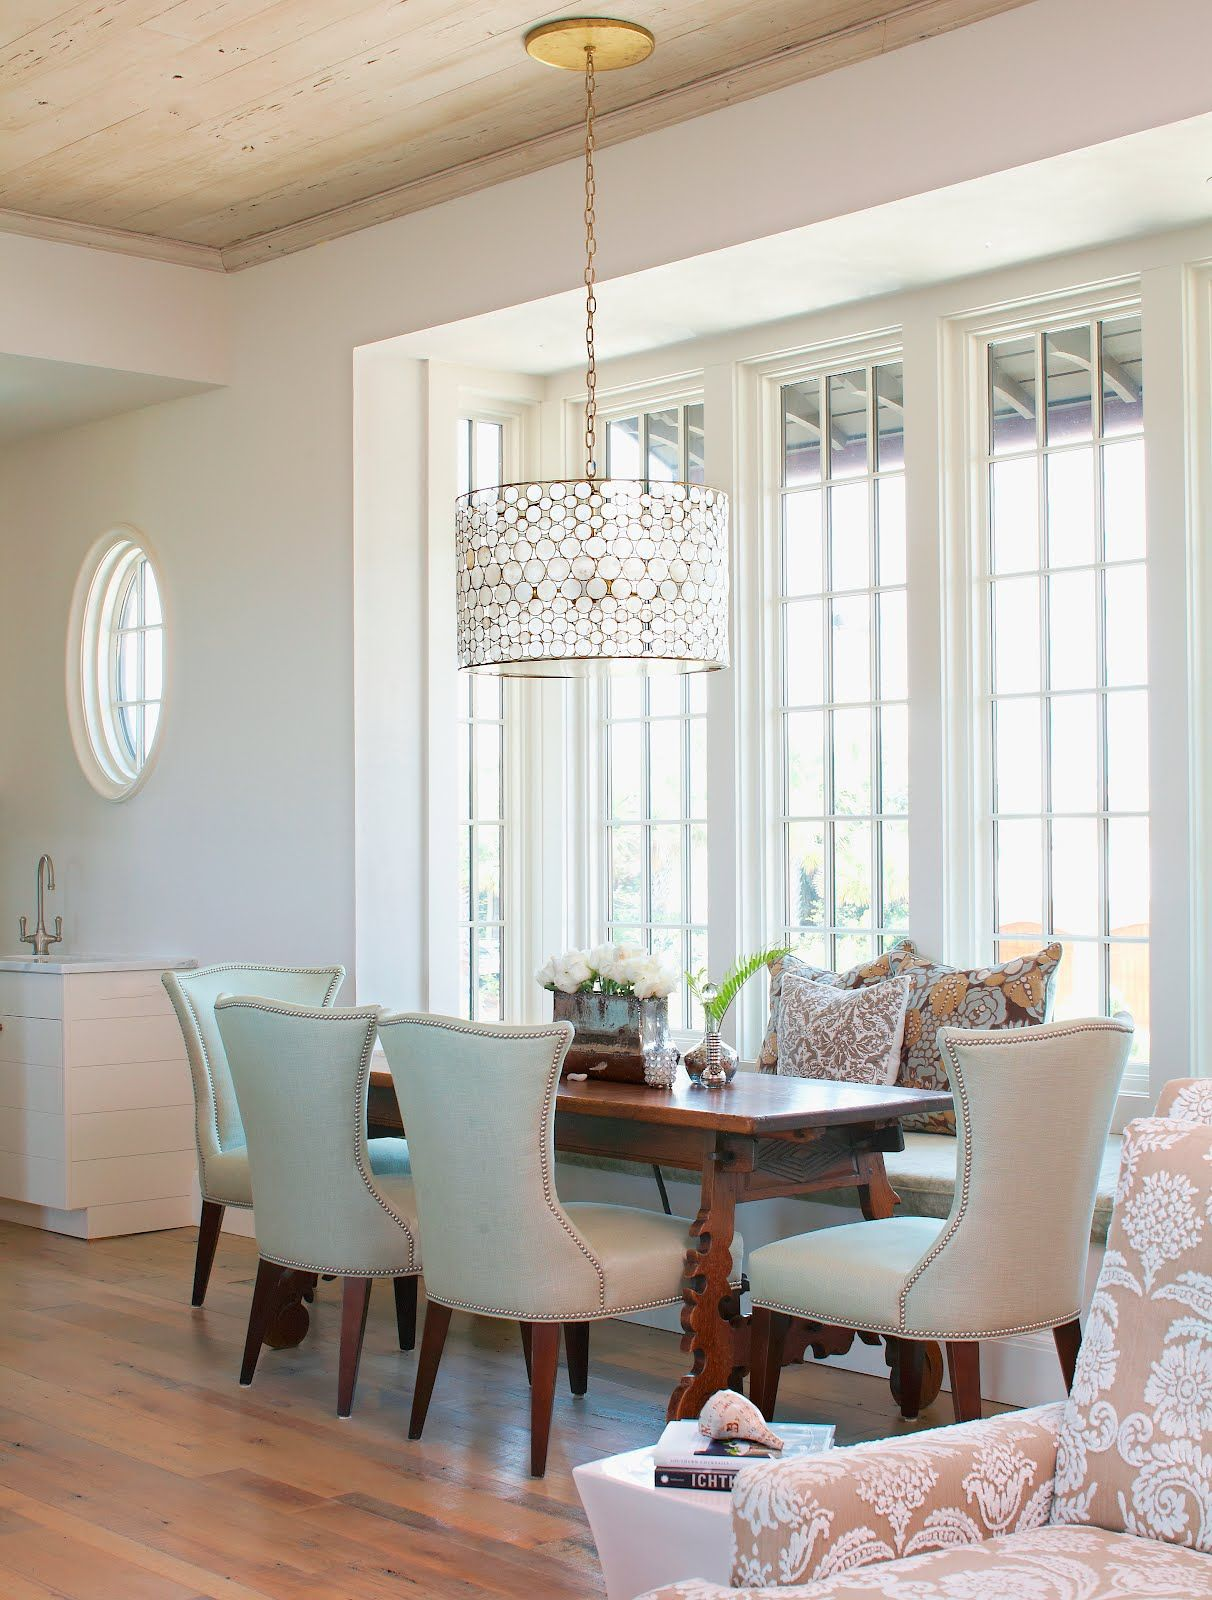 Crystal Dining Room Chandeliers Marvelous Rooms With All Photos To Add An Opulent Focal Point